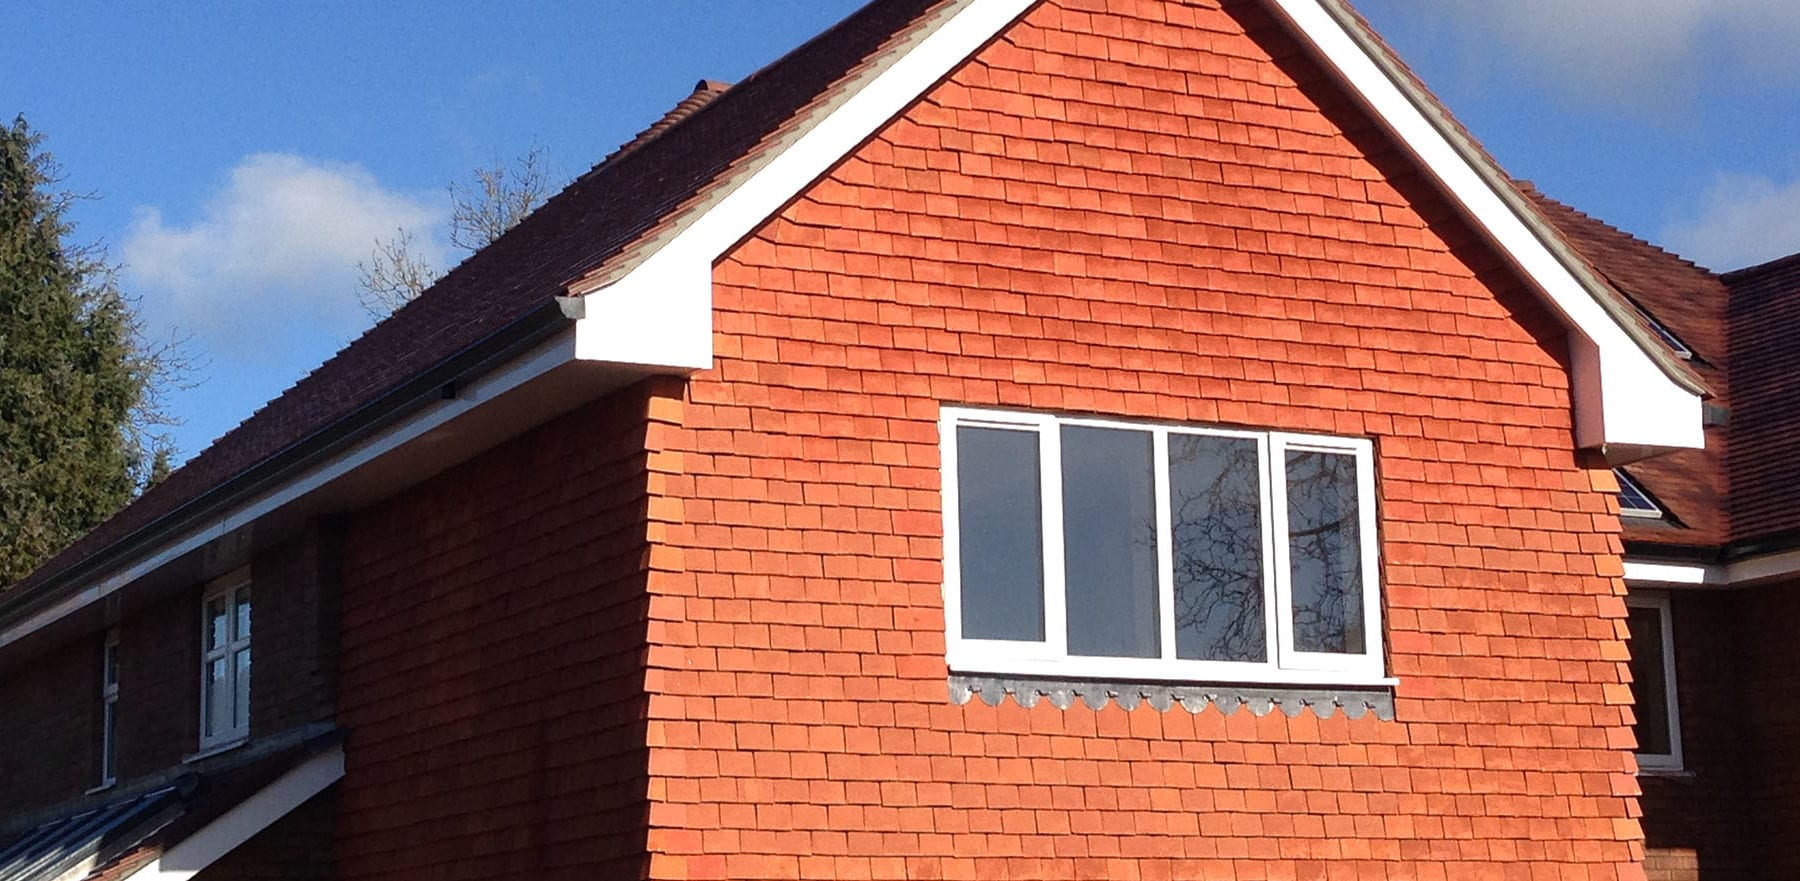 Lifestiles - Handcrafted Pentlow Clay Roof Tiles - Crondall, England 2